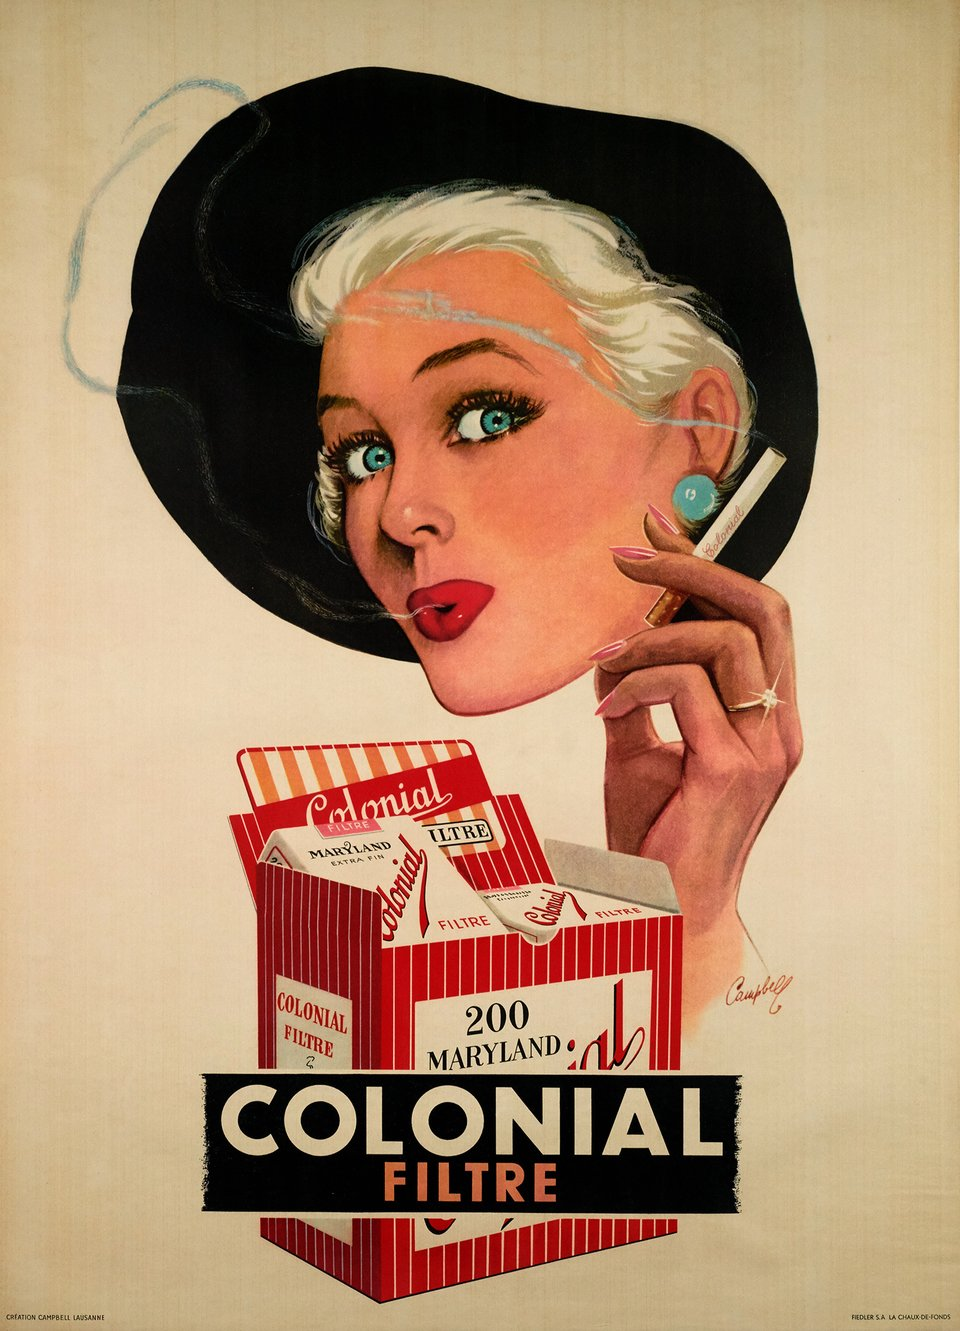 Colonial filtre – Vintage poster – Marcus CAMPBELL – 1955